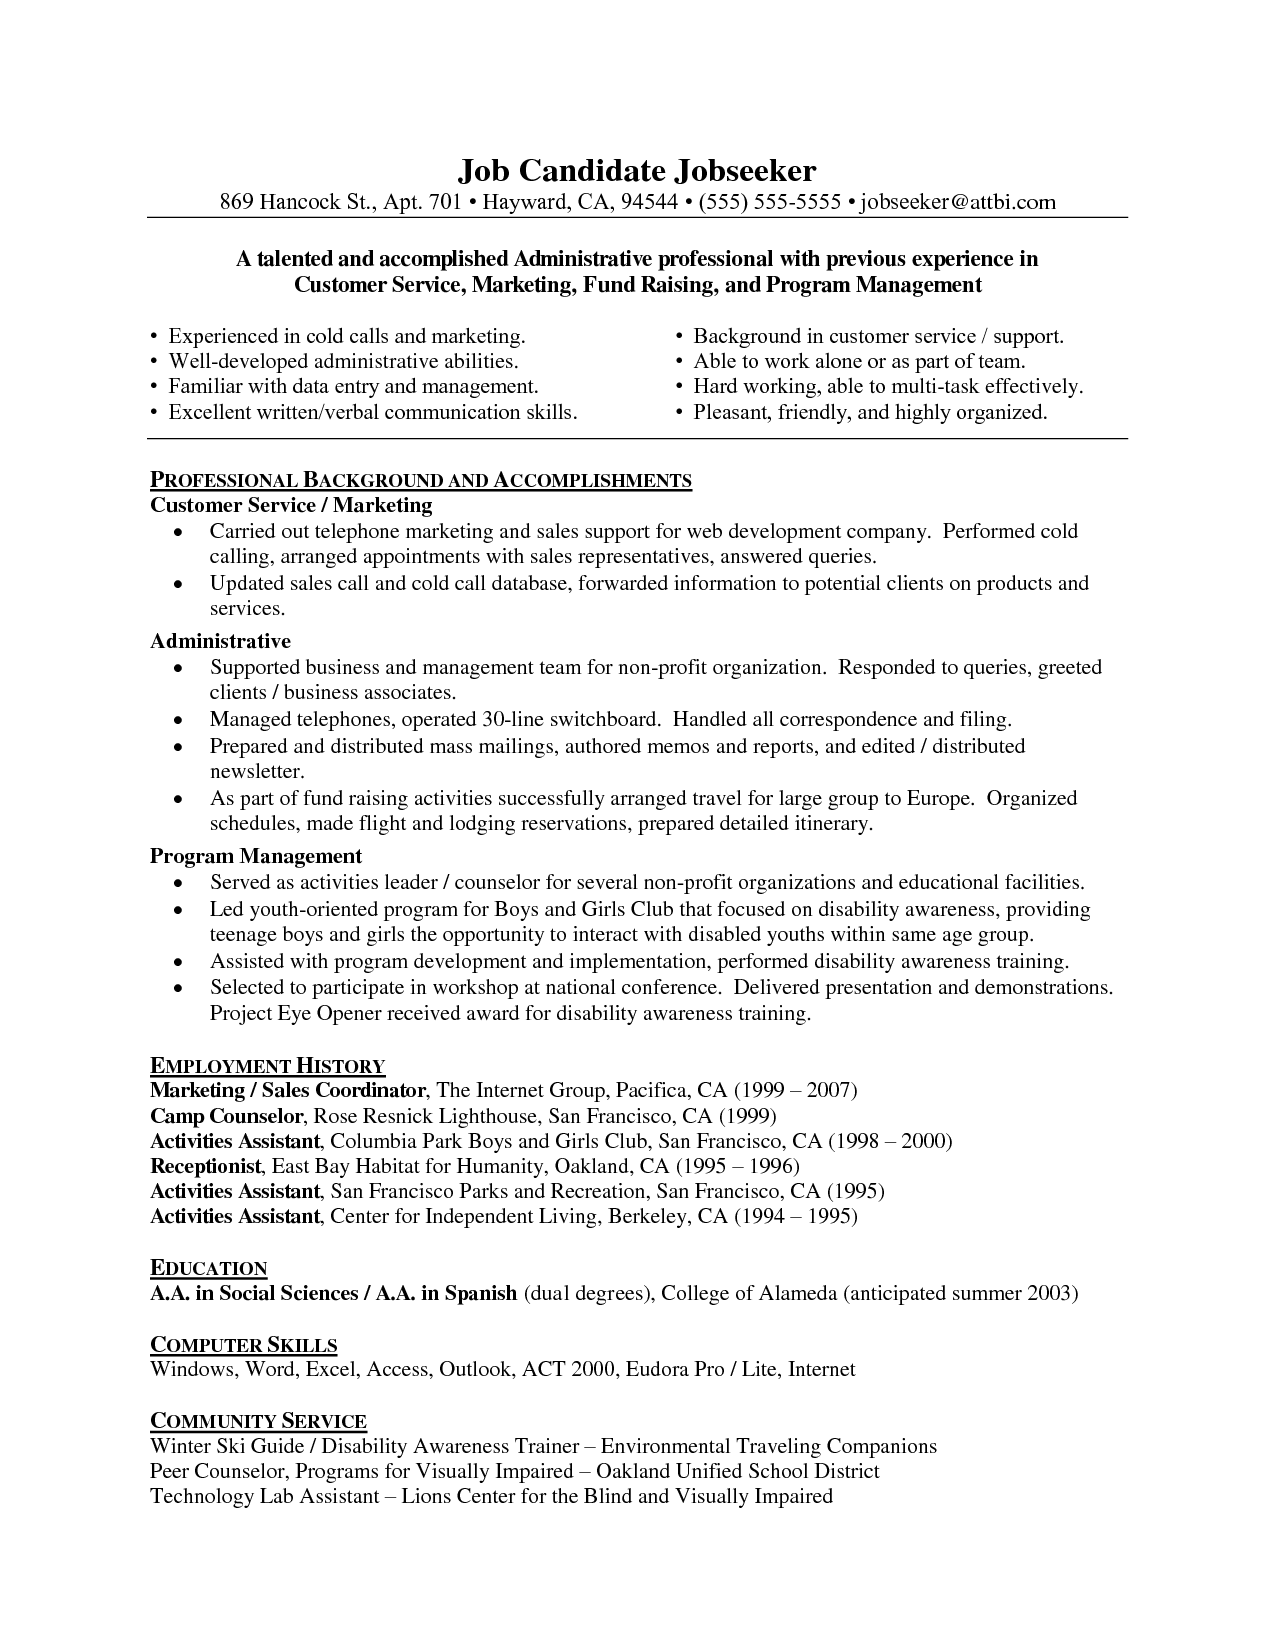 Write A Good Resume Objective Statement Free Sample Resume Cover  Customer Service Resume Objectives